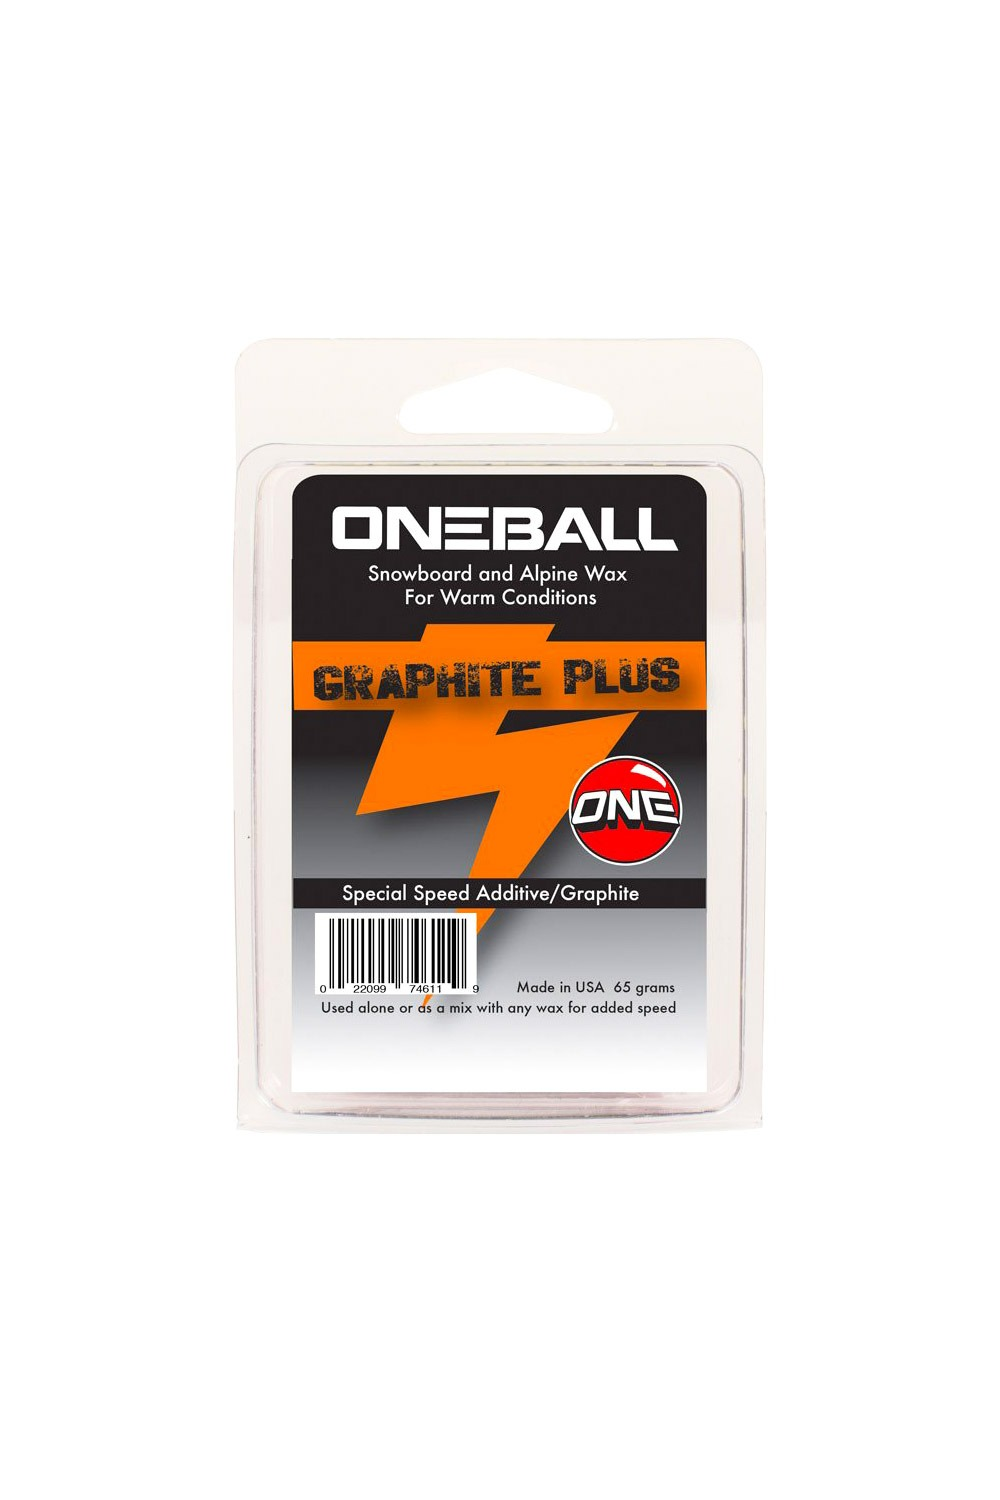 원볼 왁스_F-1 그라파이트-모든 온도대응, 65g/ONEBALL F-1 GRAPHITE-ALL TEMP/ONEBALL F-1 GRAPHITE-ALL TEMP/65G_HOB71700_DHOB71700